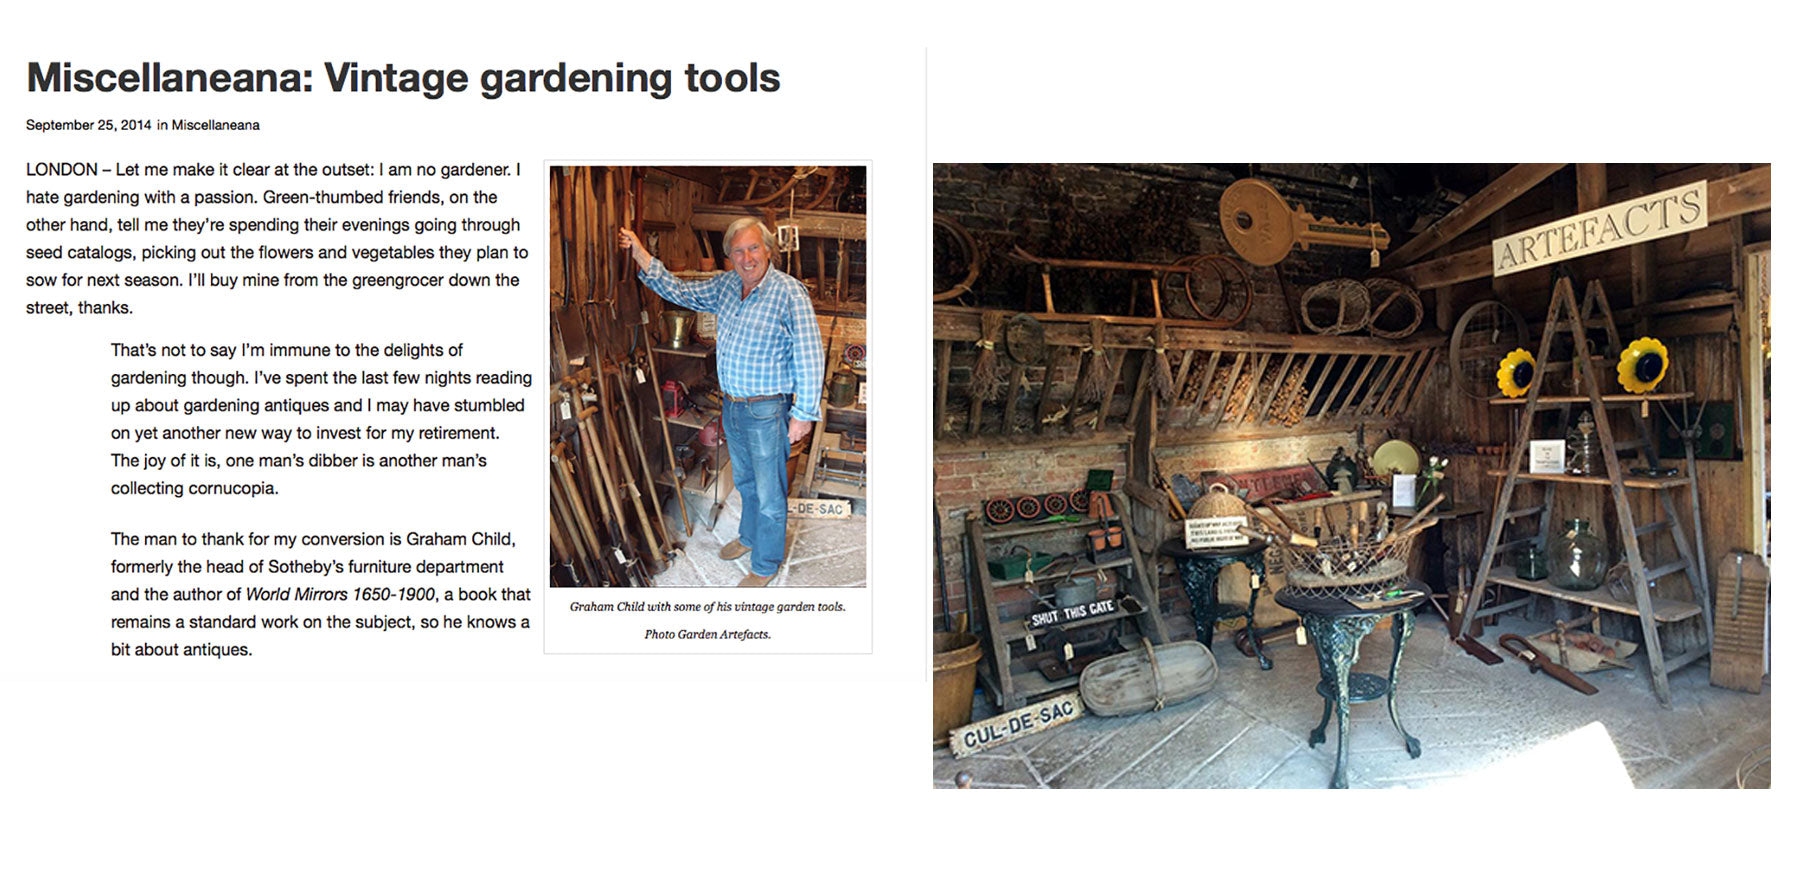 Auction Central News - Miscellaneana Vintage Gardening Tools